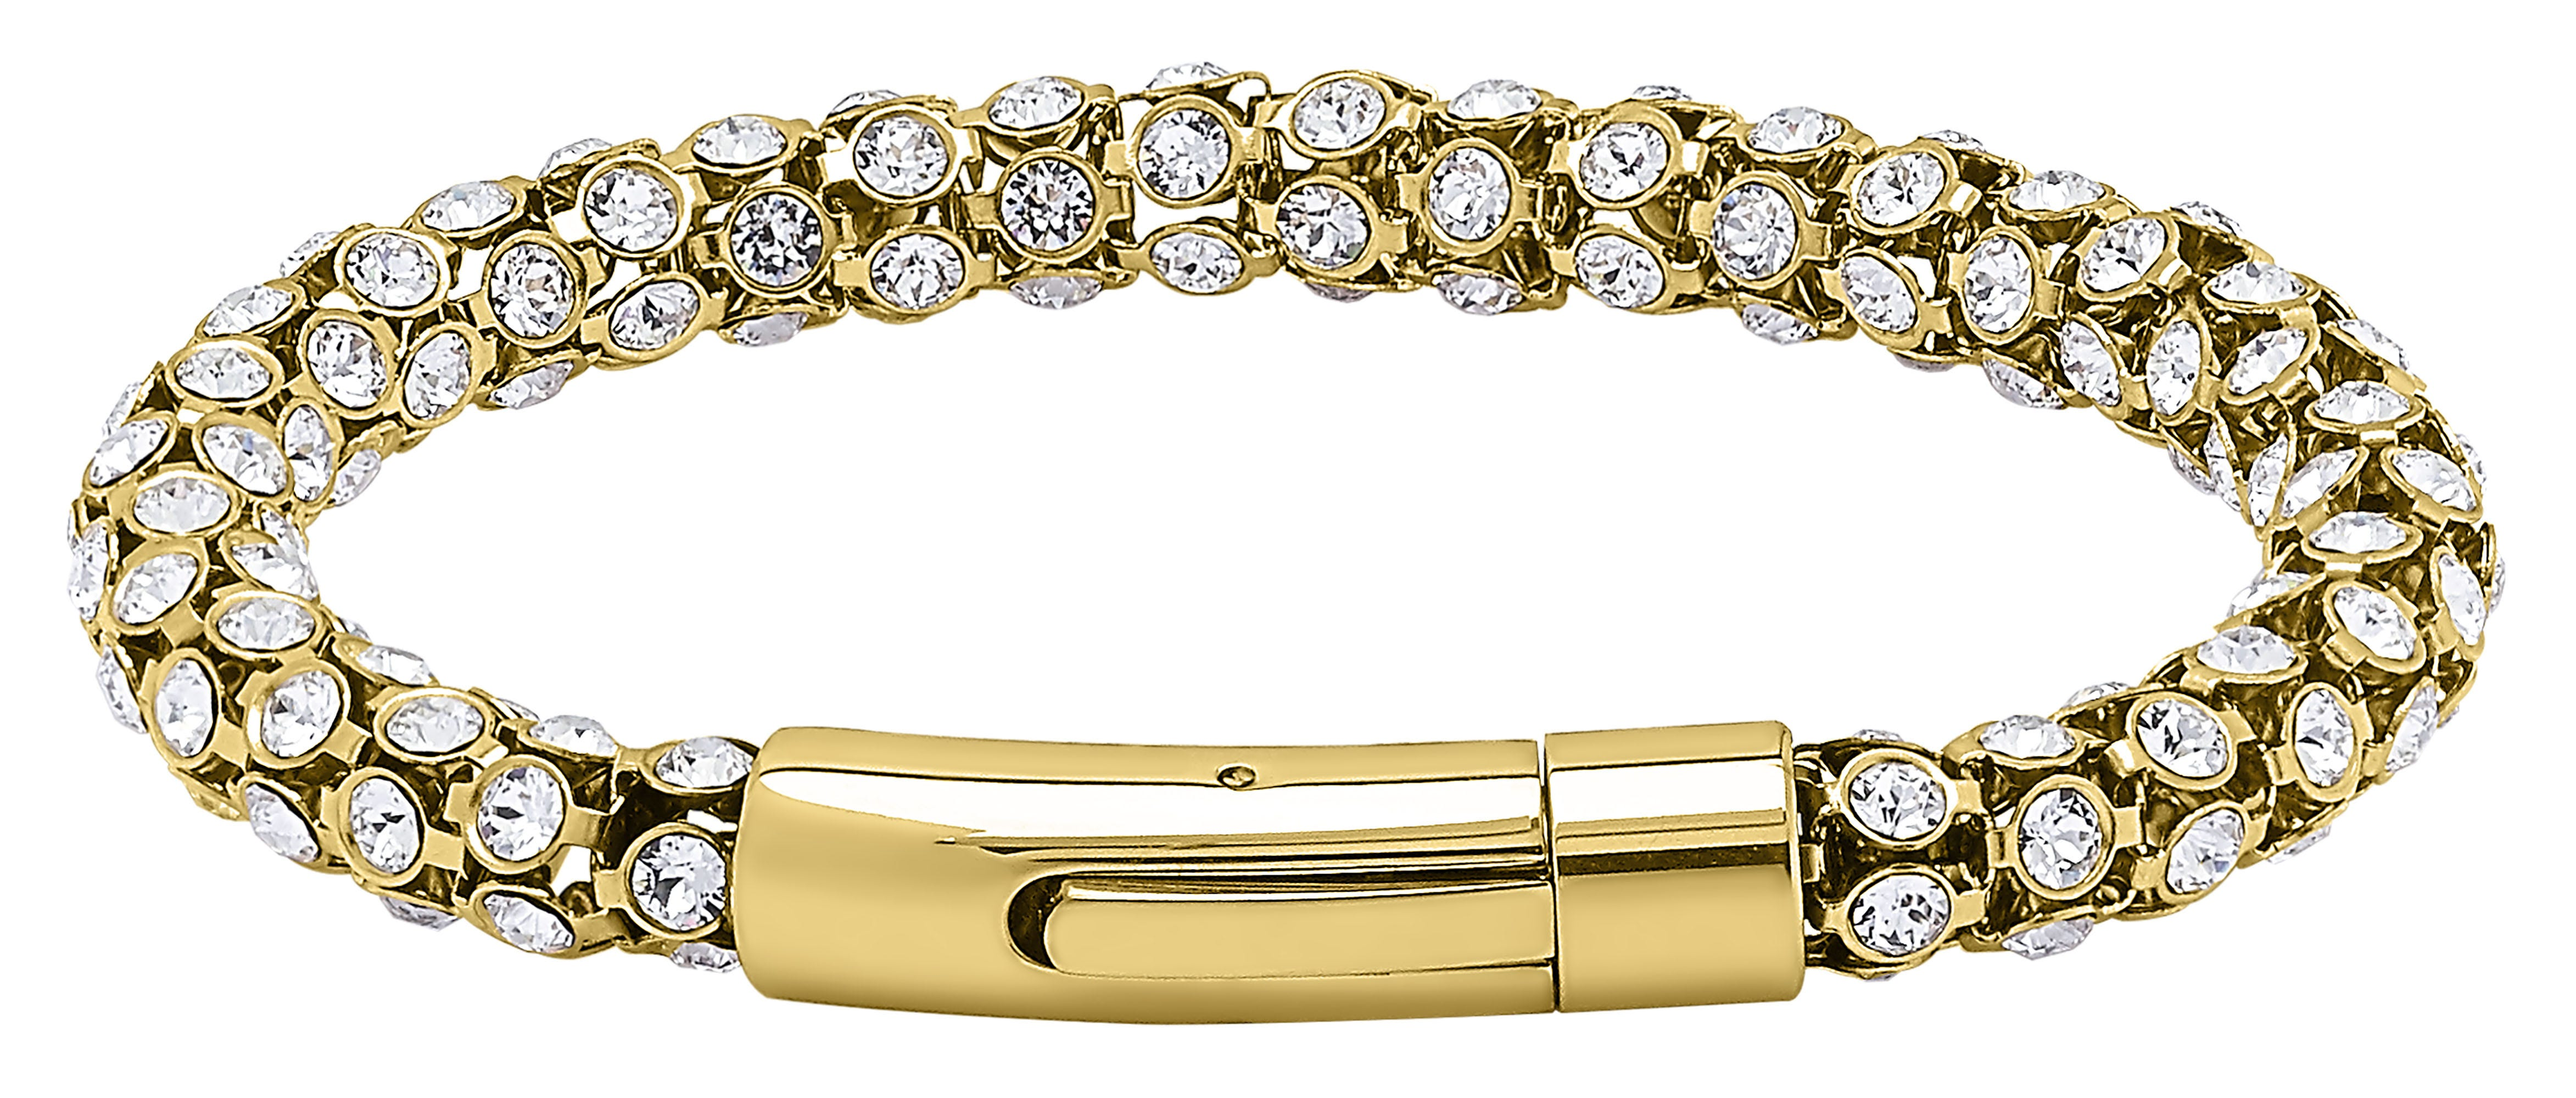 Crystal 'Popcorn' Link Clasp Bracelet Plated Yellow Gold